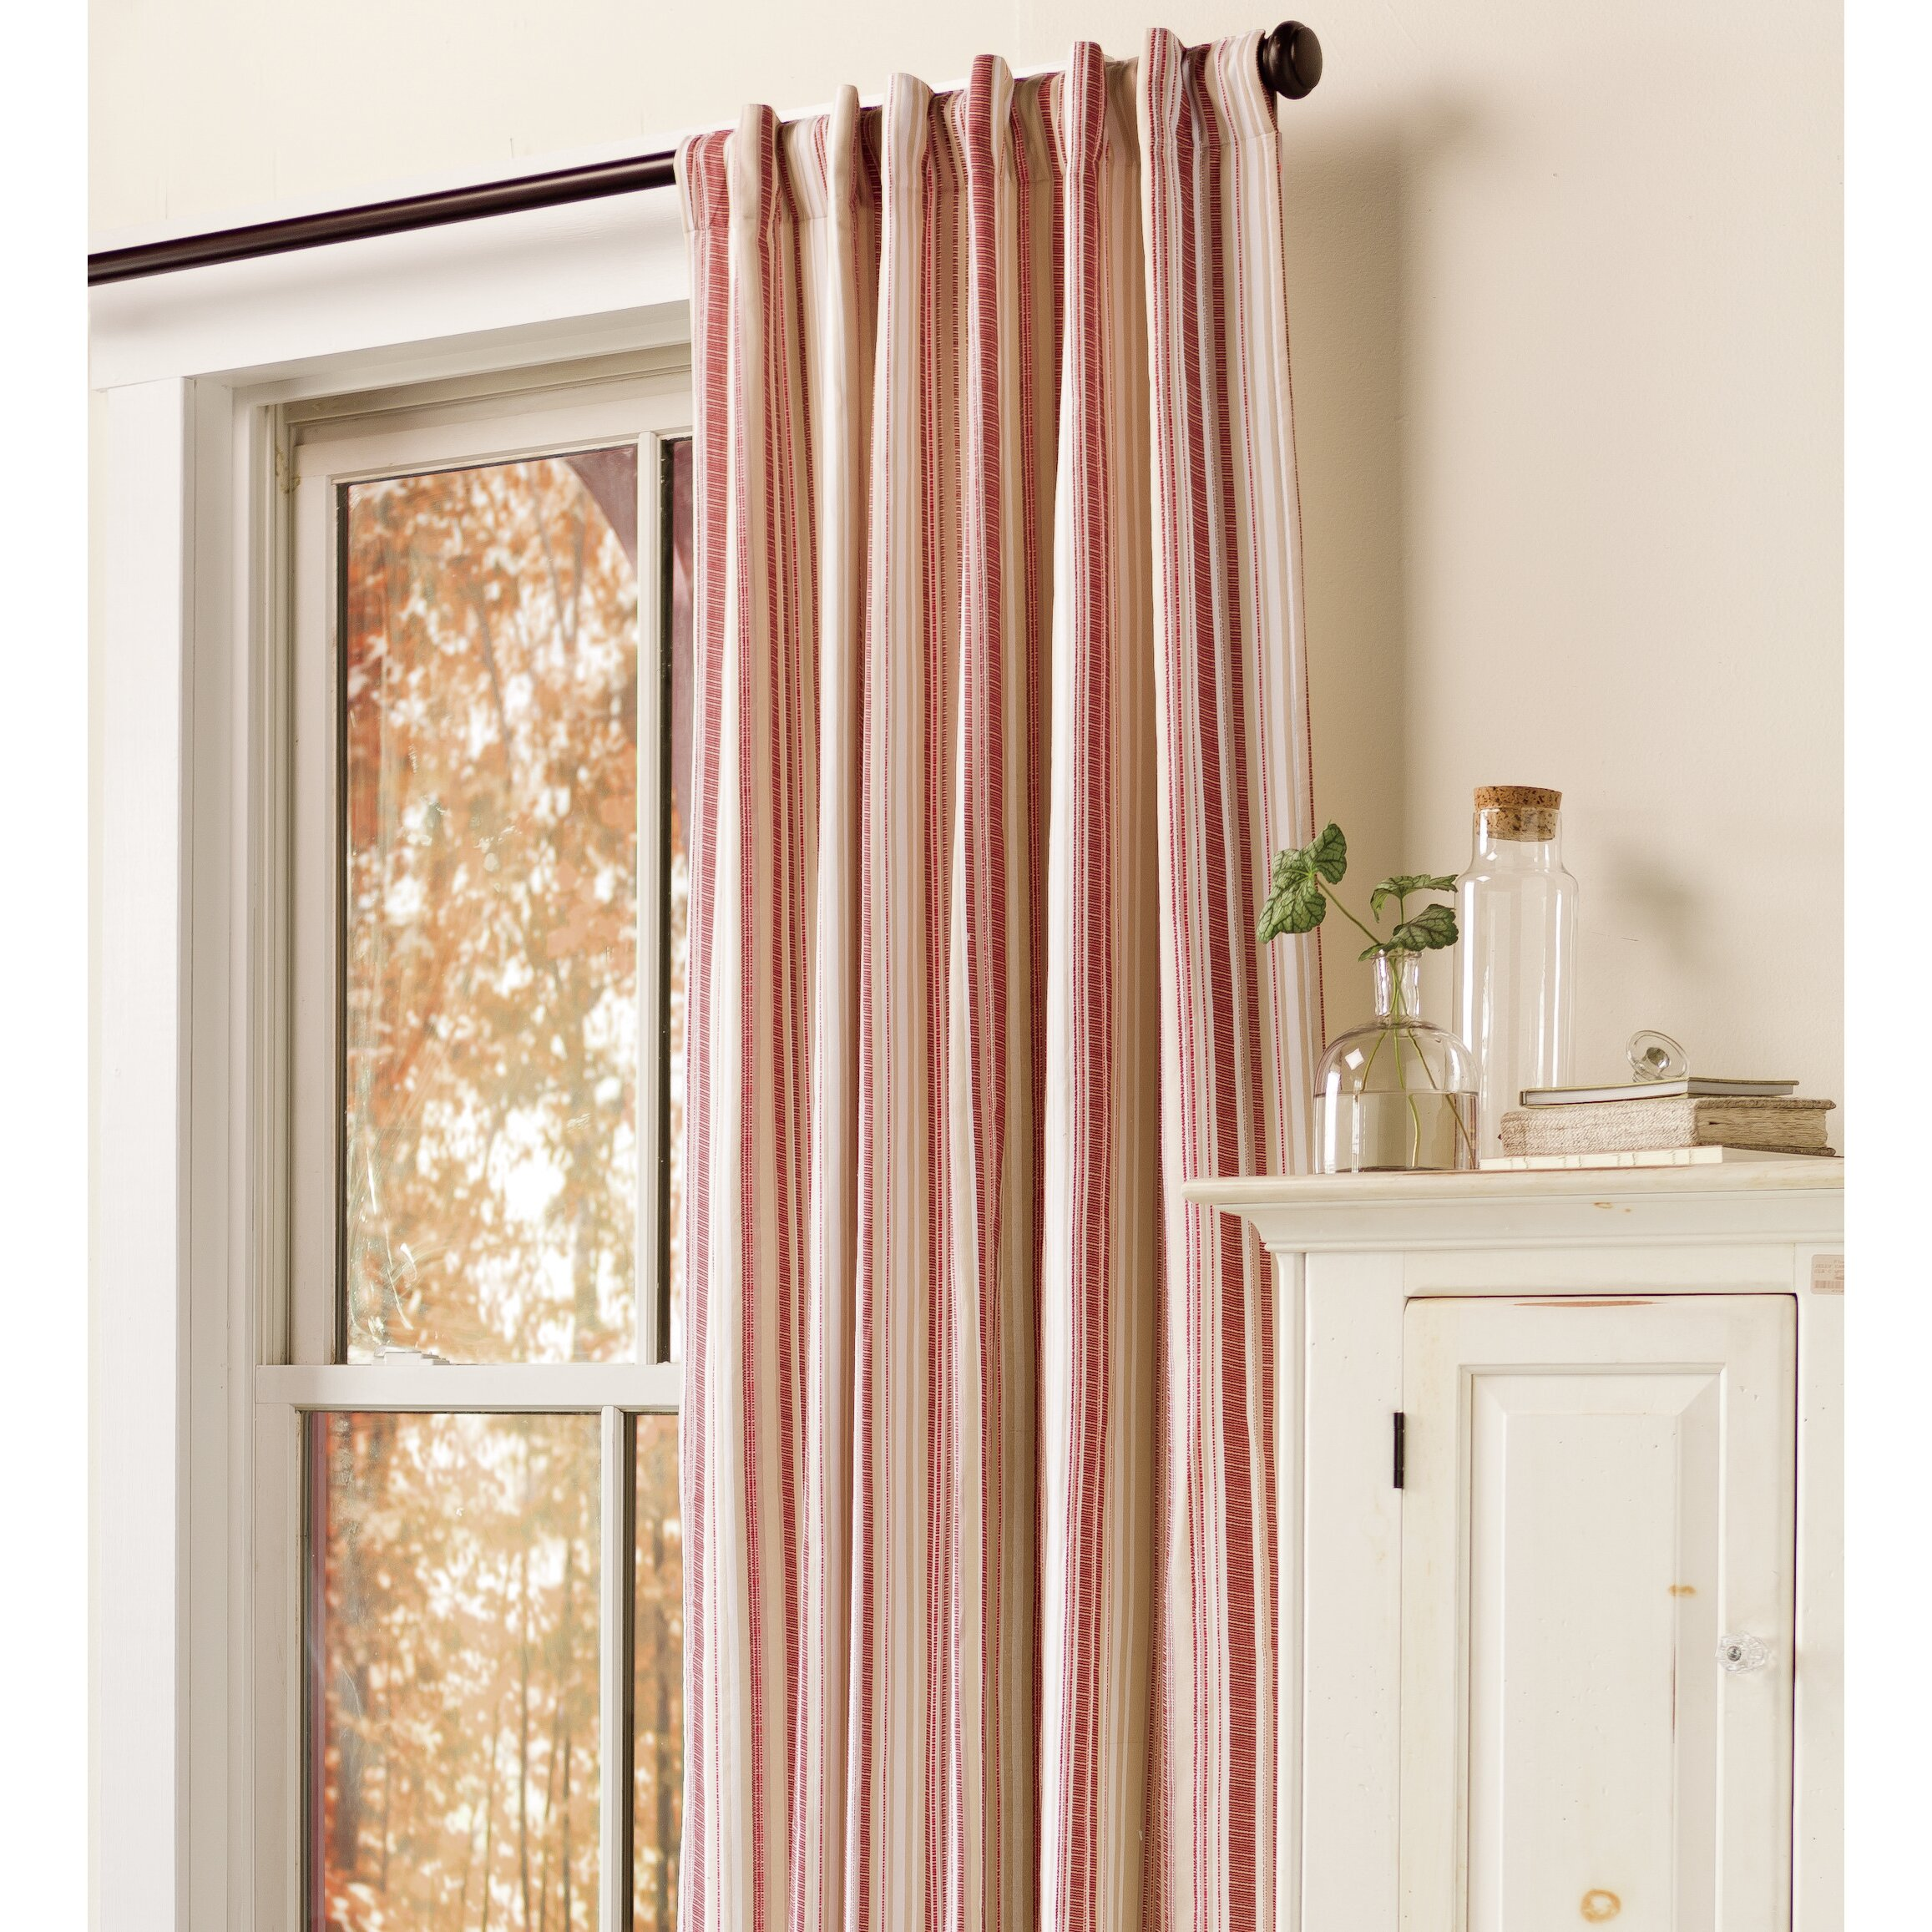 Image Result For Double Curtain Rod Valance